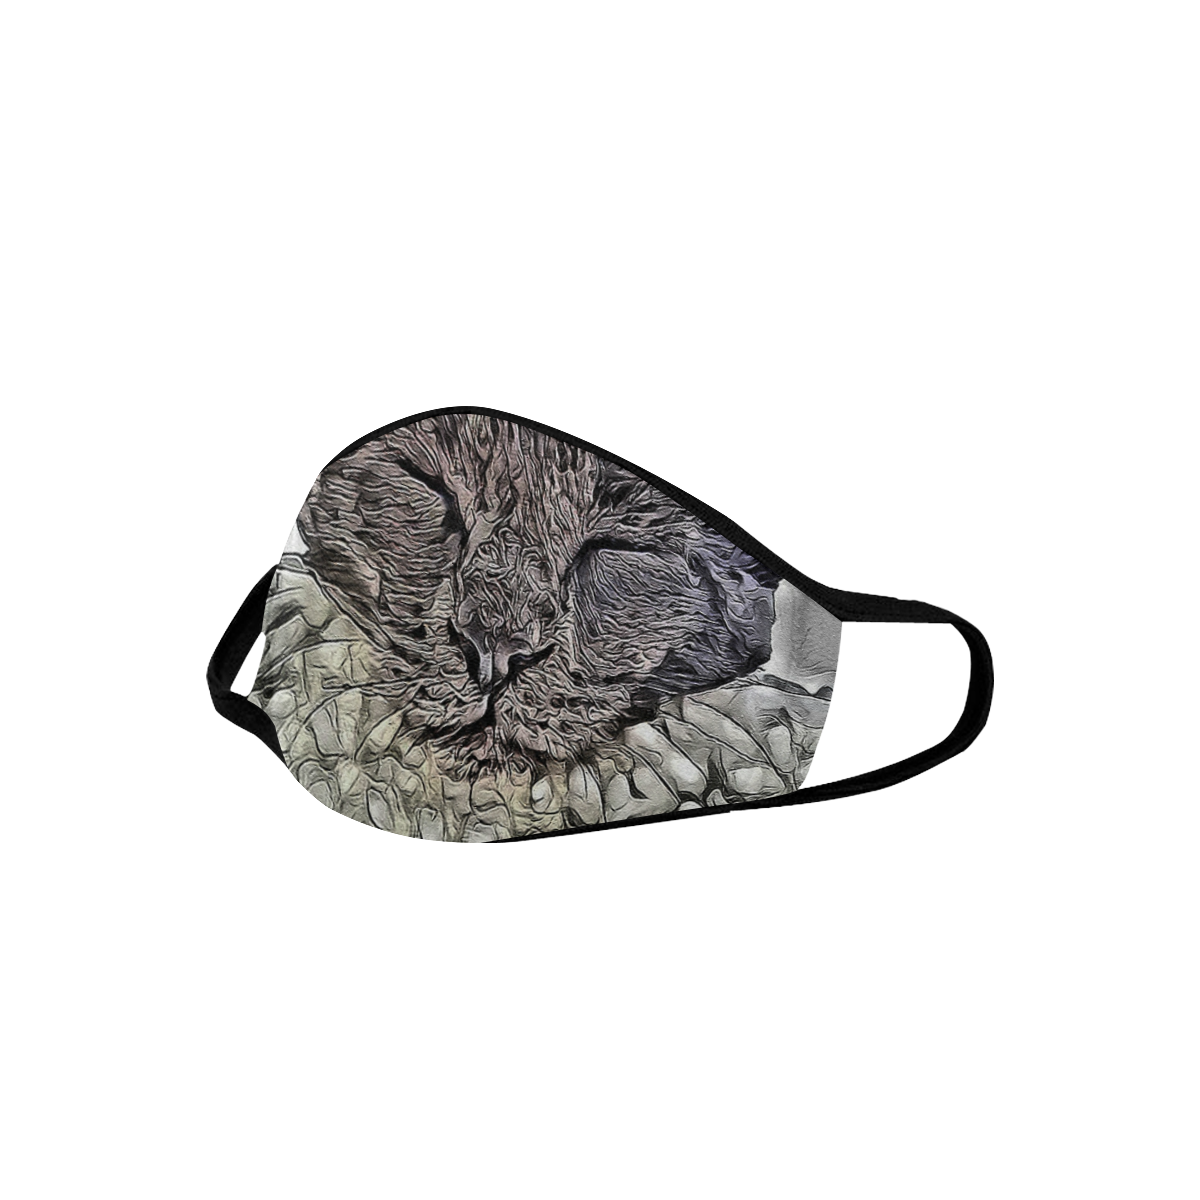 SLEEPING CAT MASK Mouth Mask